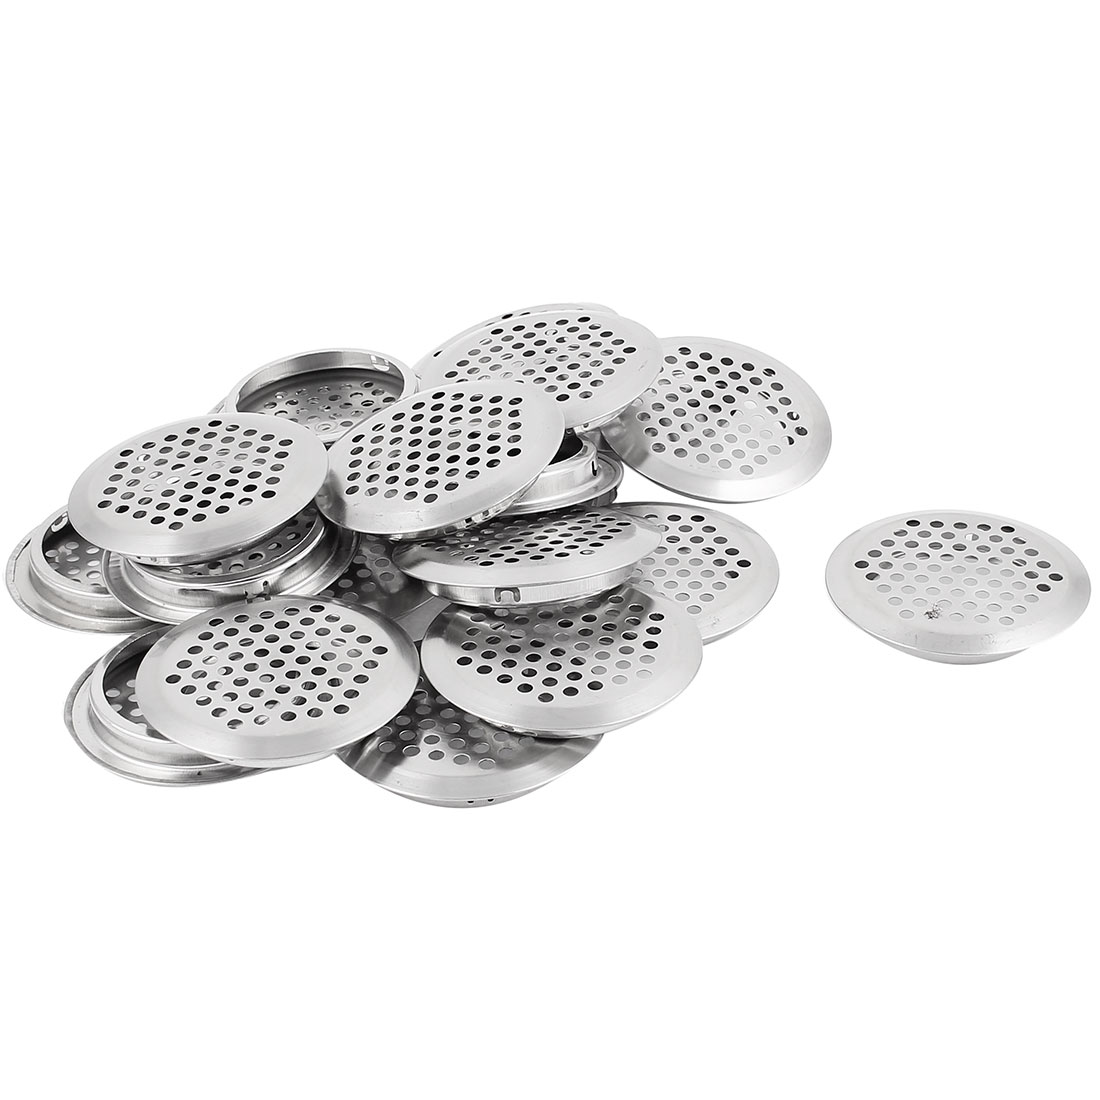 53mm Bottom Dia Round Panel Shoes Cupboard Cabinet Air Vent Louver Cover 20pcs